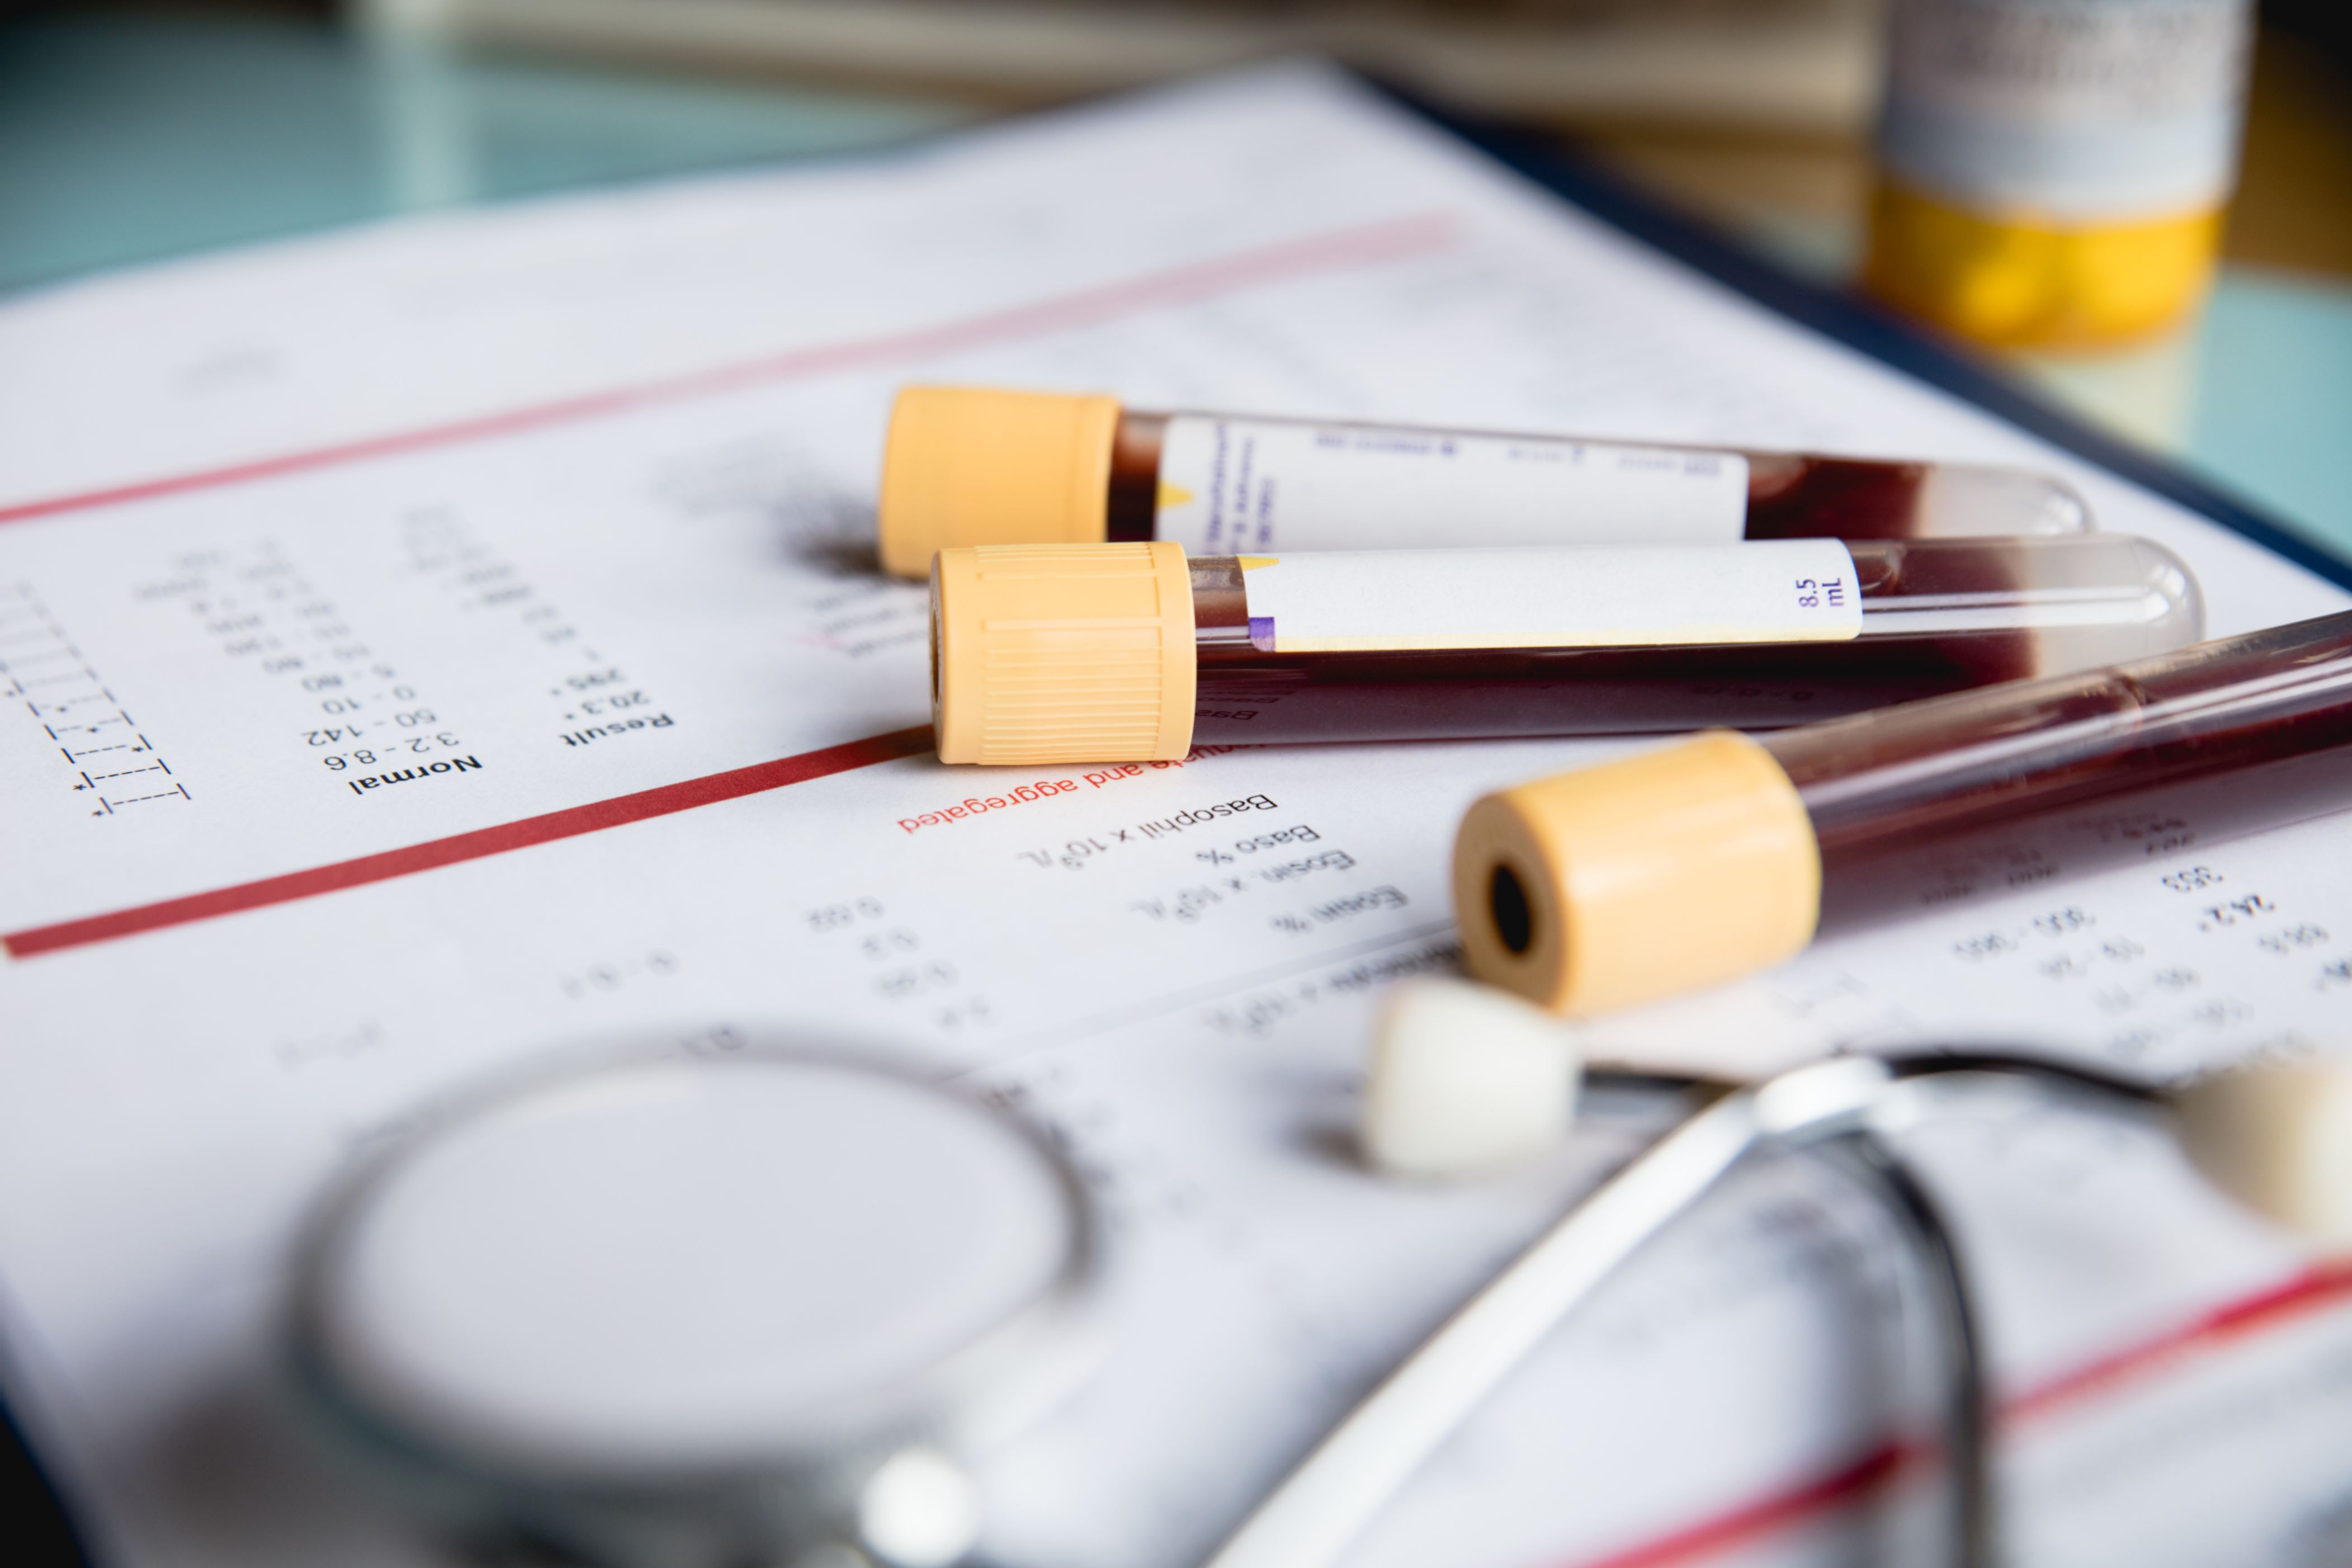 Cancer blood test catches disease 4 years before conventional methods